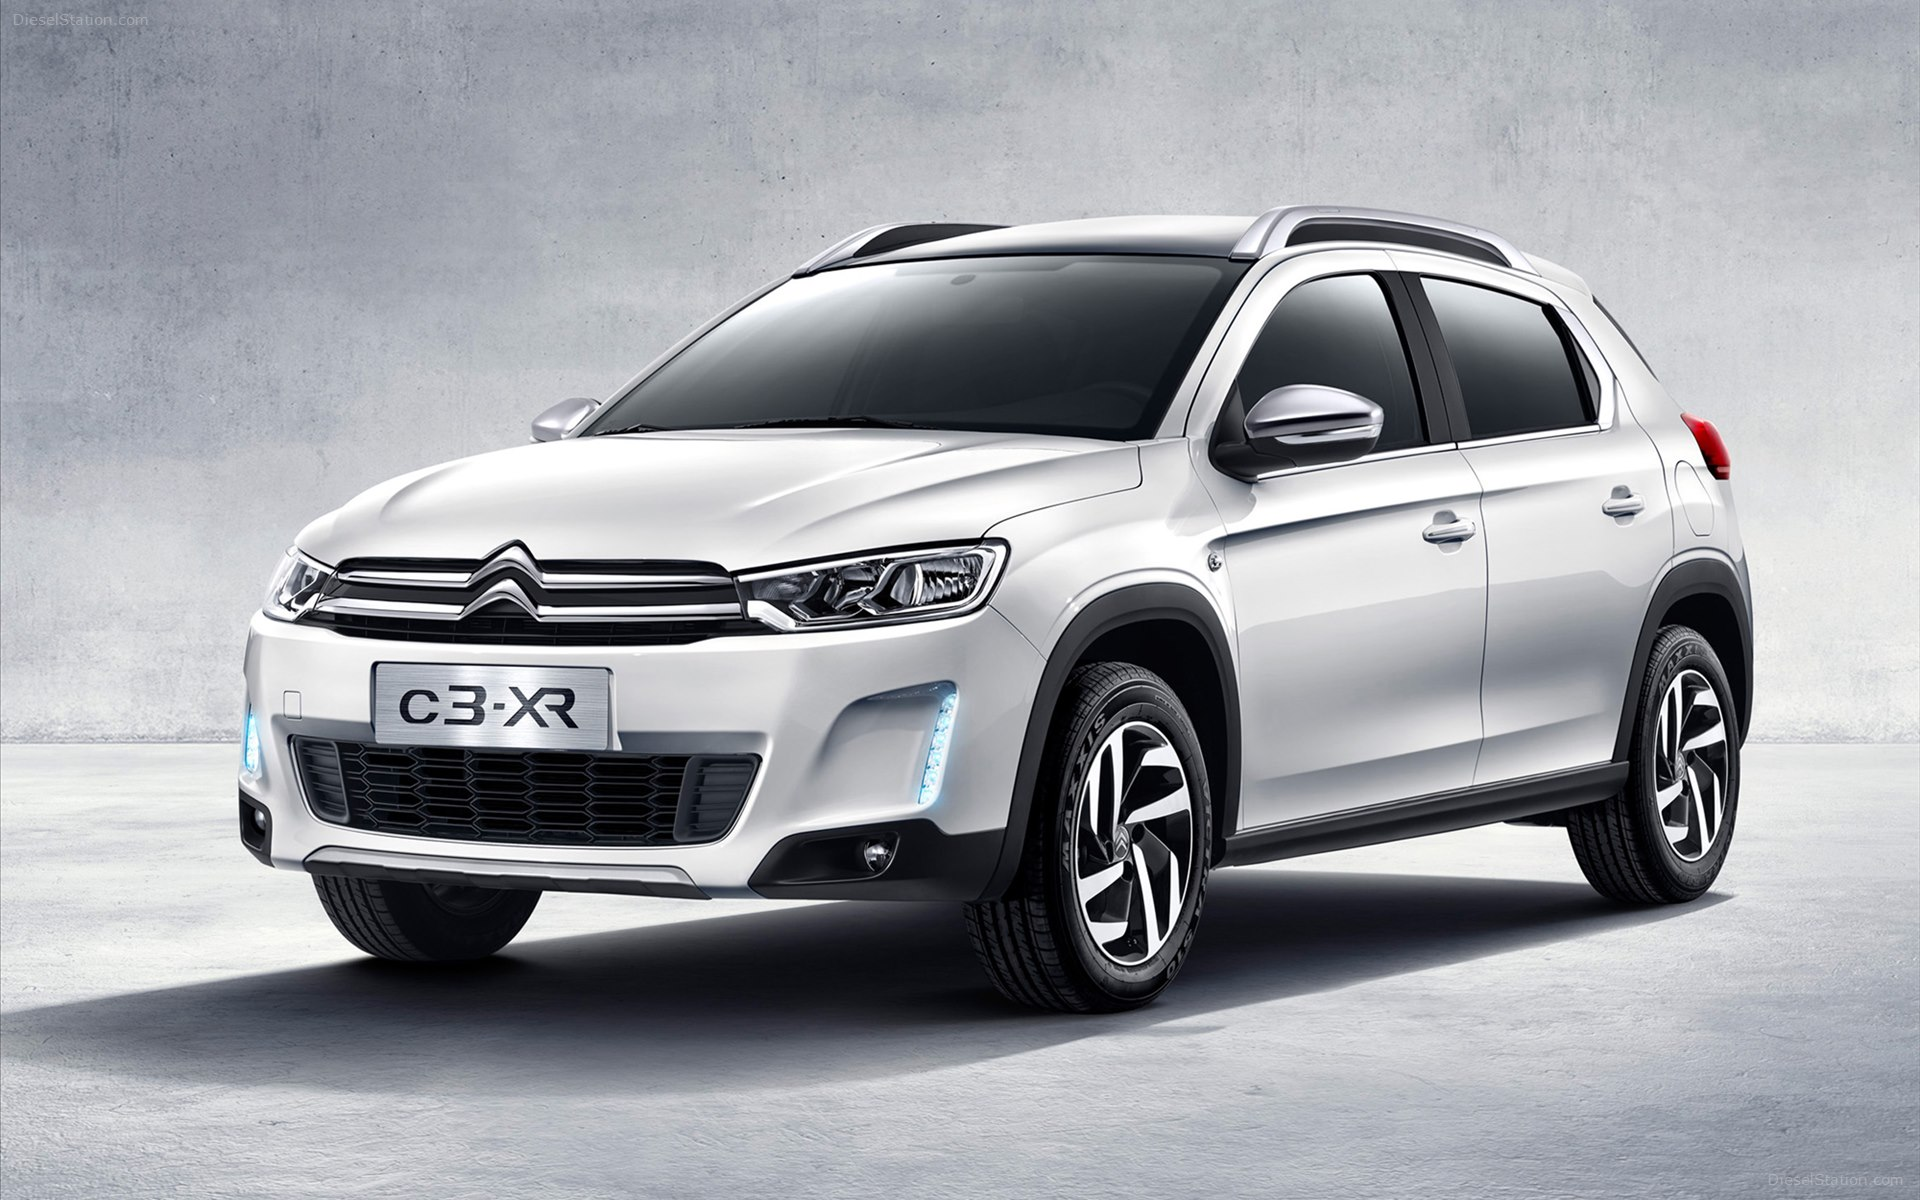 2015 citroen c3 xr crossover wallpaper hd car wallpapers id 4976